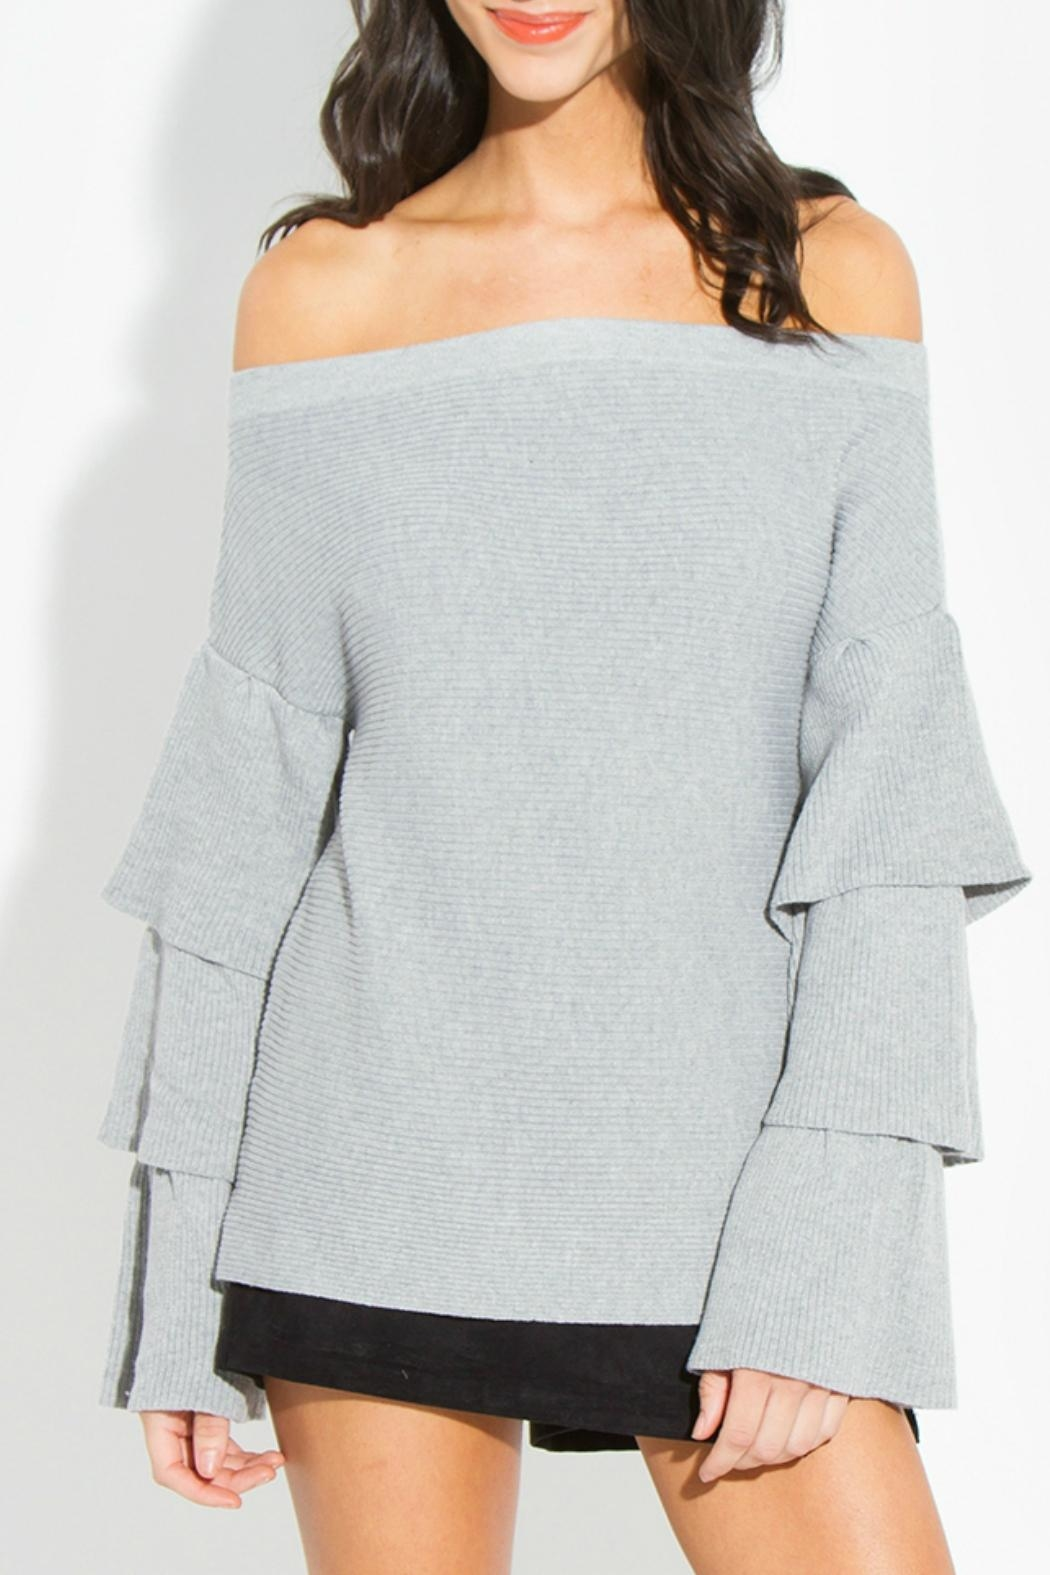 fc9d1e0521a62 Sugar Lips Joselle Off-The-Shoulder Sweater from Atlanta by Natasha ...